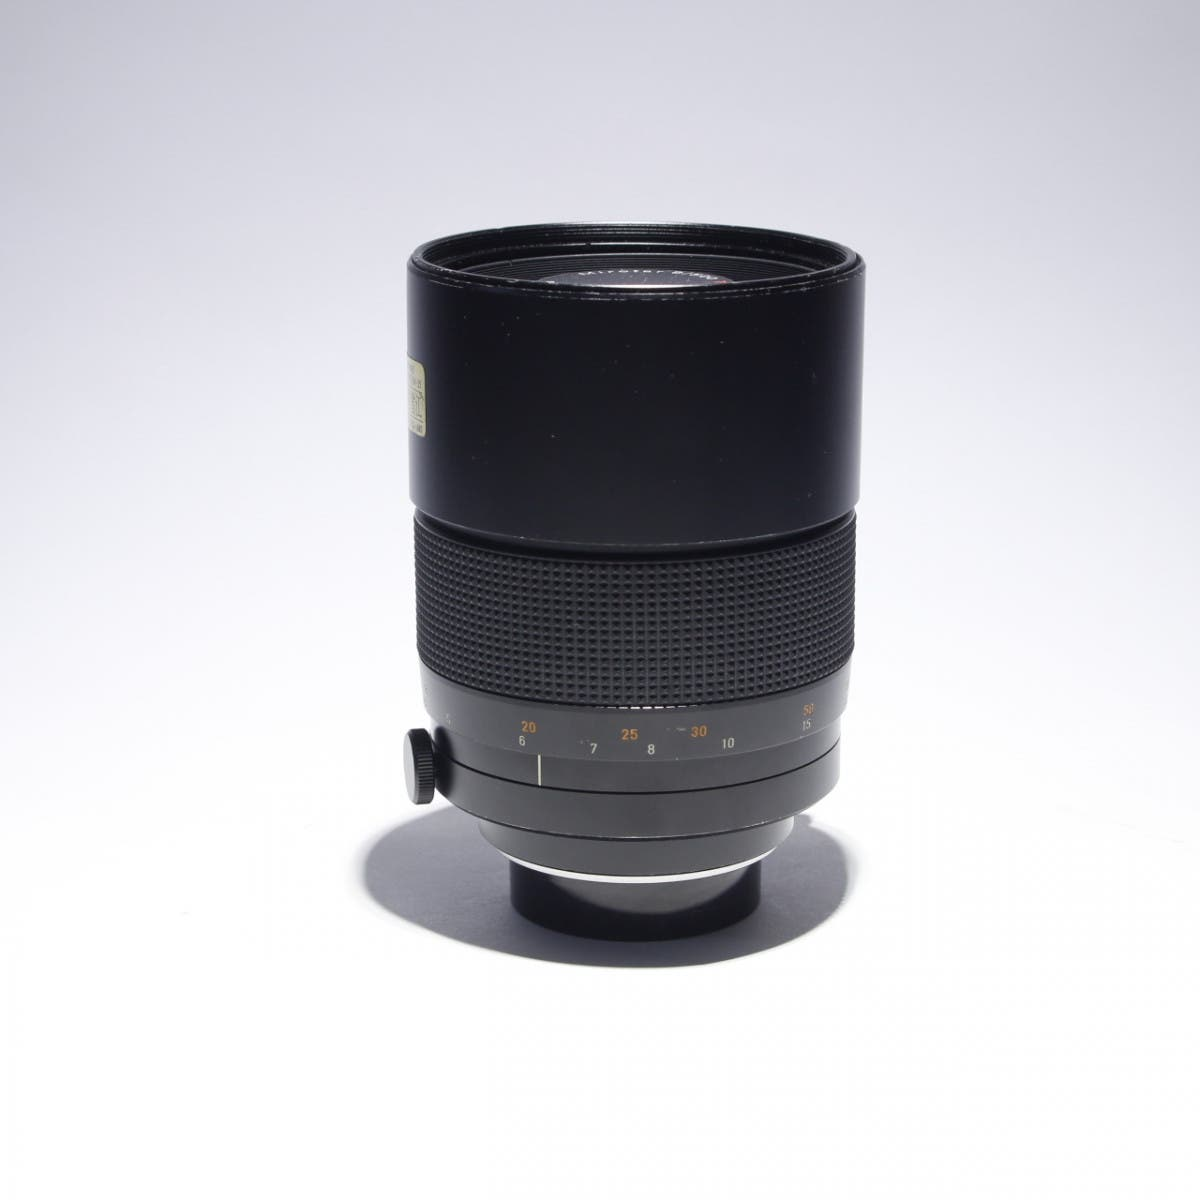 This Carl Zeiss 500mm F8 T* Has Really Cool Bokeh for Good Reason